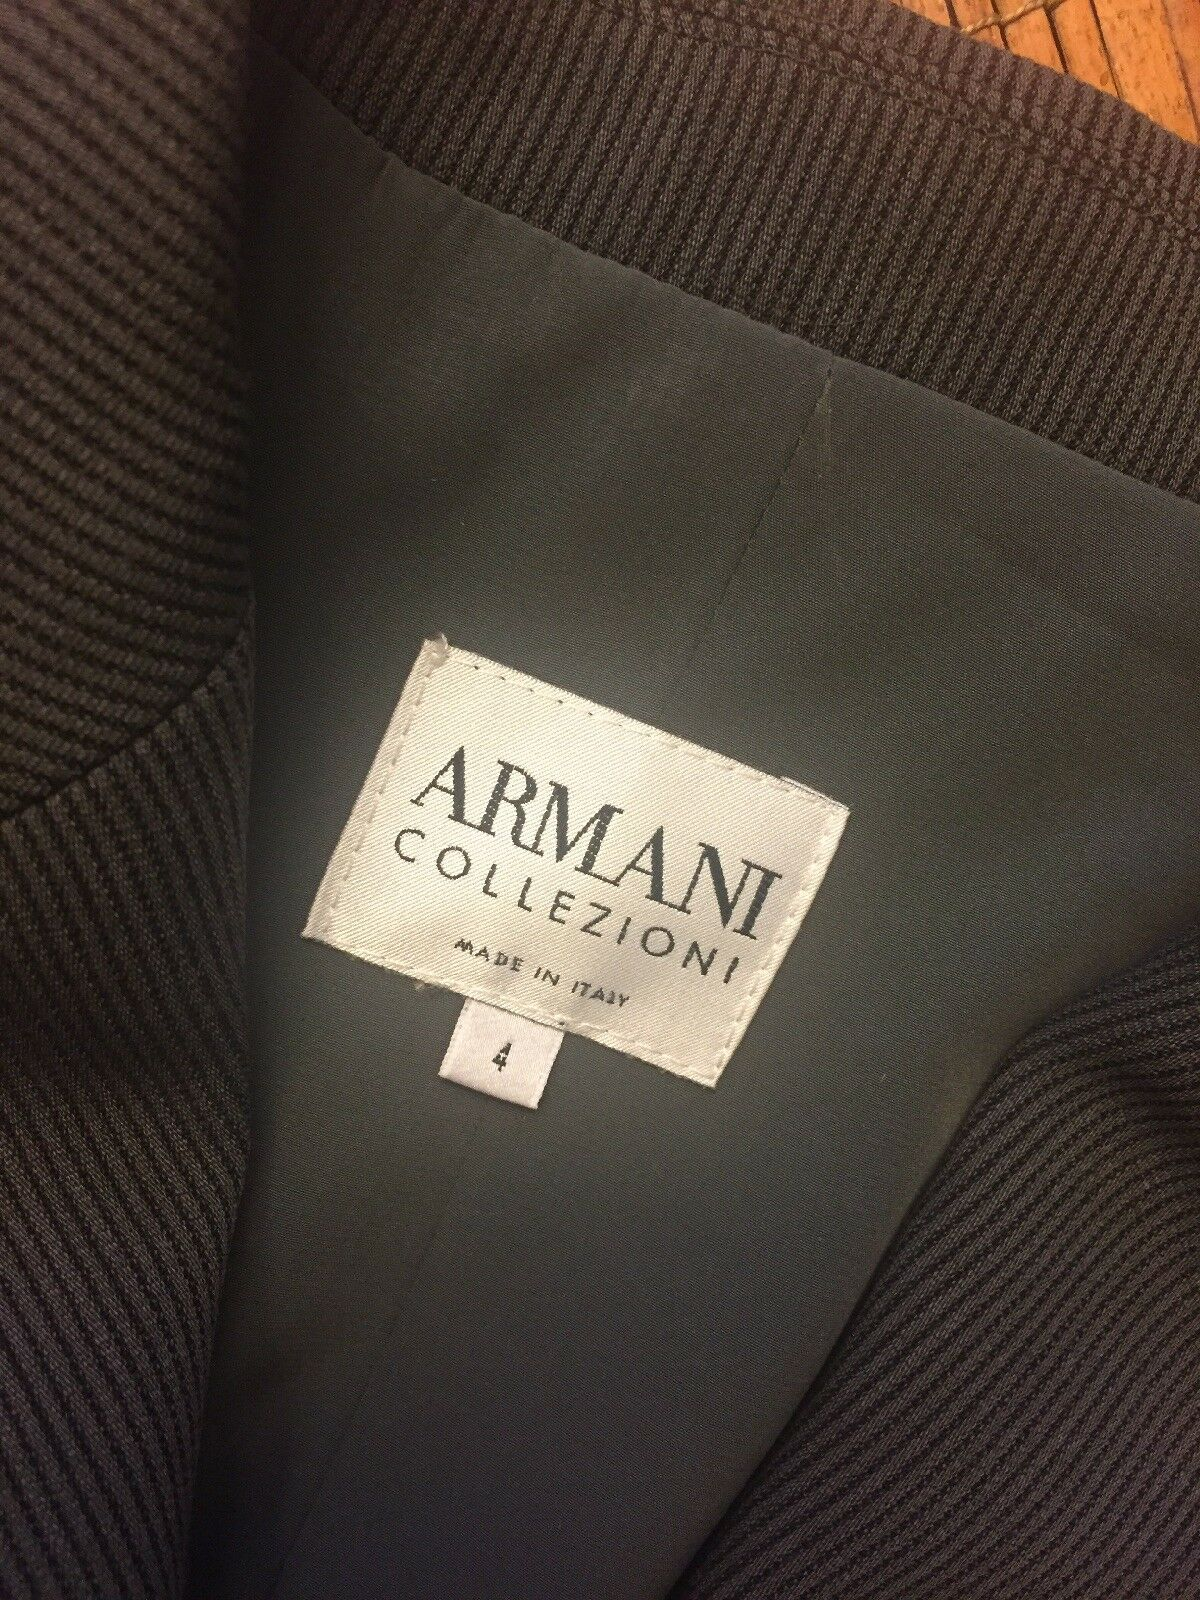 Armani Collezioni Womens 40 Blazer Wool Long Sleeves Collared Made Made Made In  4 S 7aae51